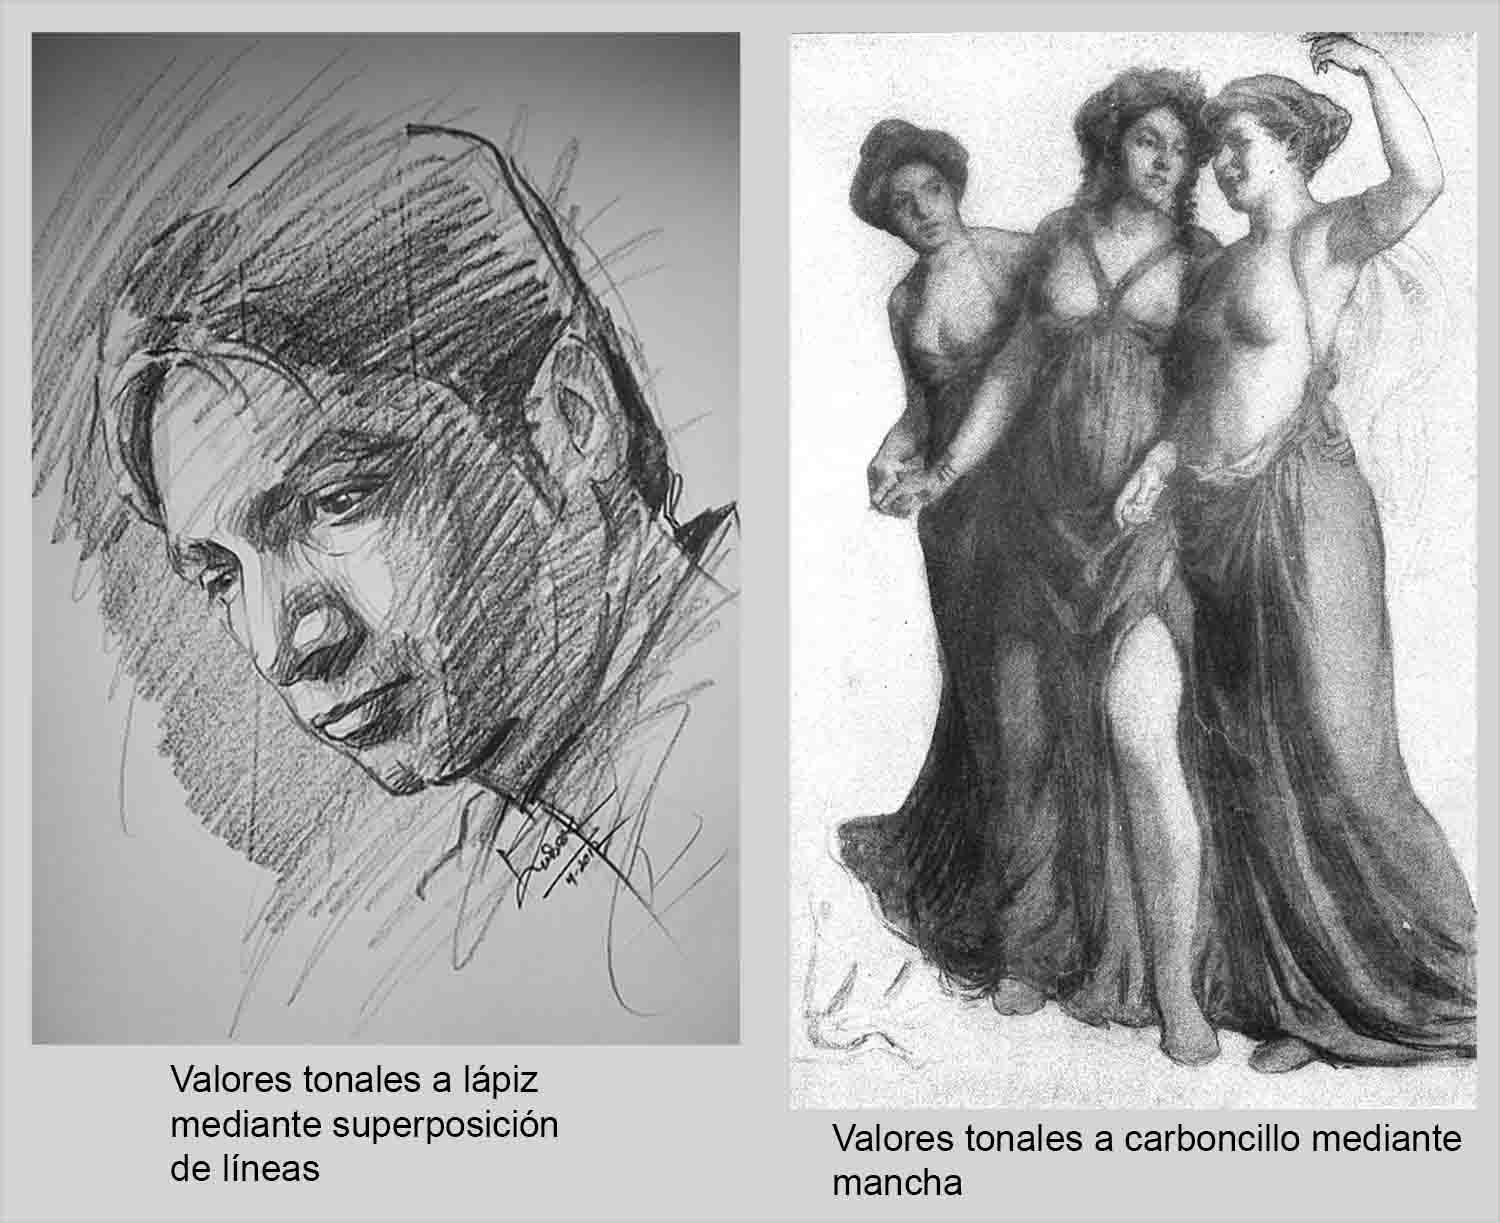 Boceto a lápiz por Raiesh sketch artist (Own work) [CC BY-SA 3.0 (https://creativecommons.org/licenses/by-sa/3.0)], via Wikimedia Commons